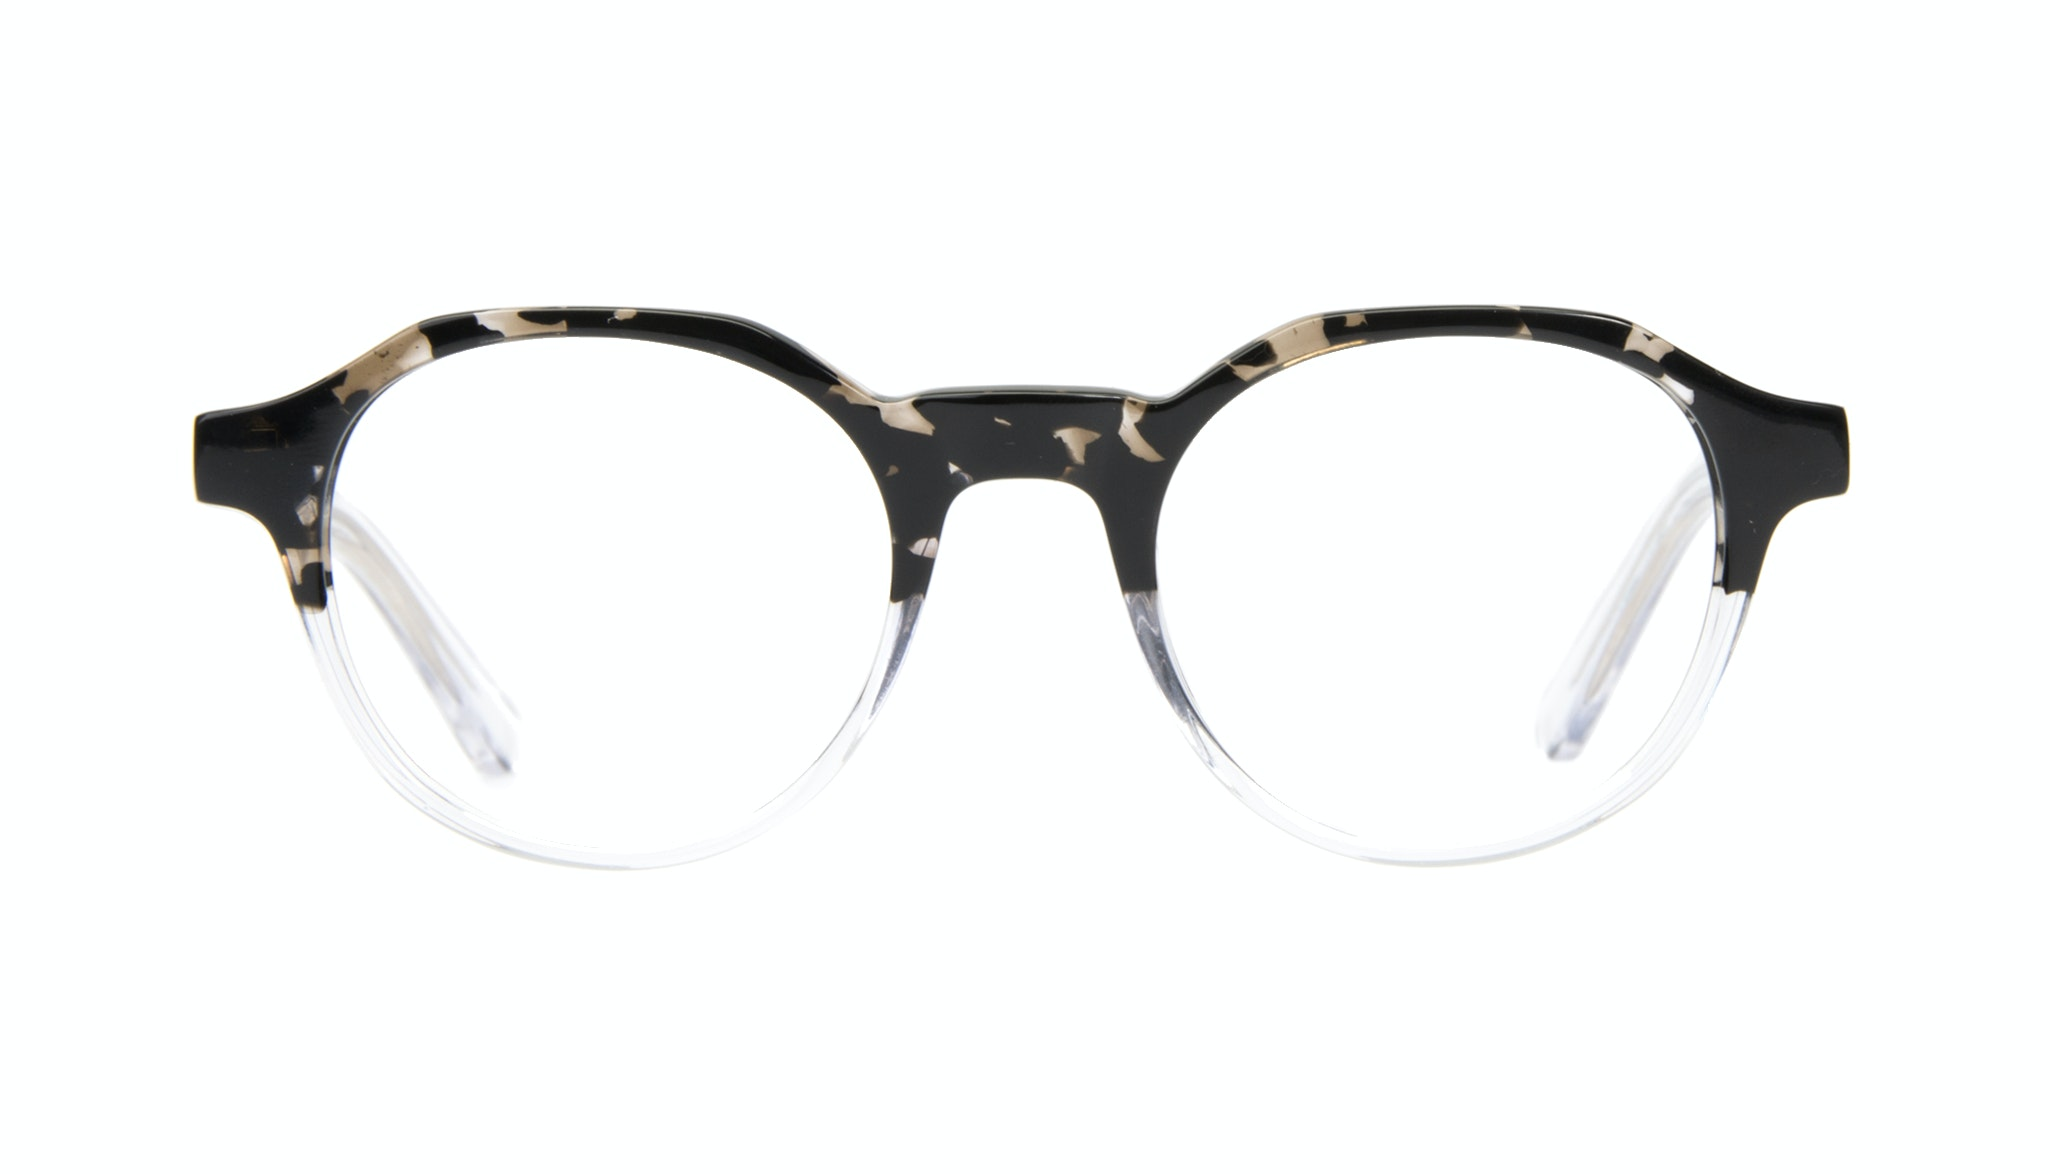 Affordable Fashion Glasses Round Eyeglasses Men Form Stone Clear